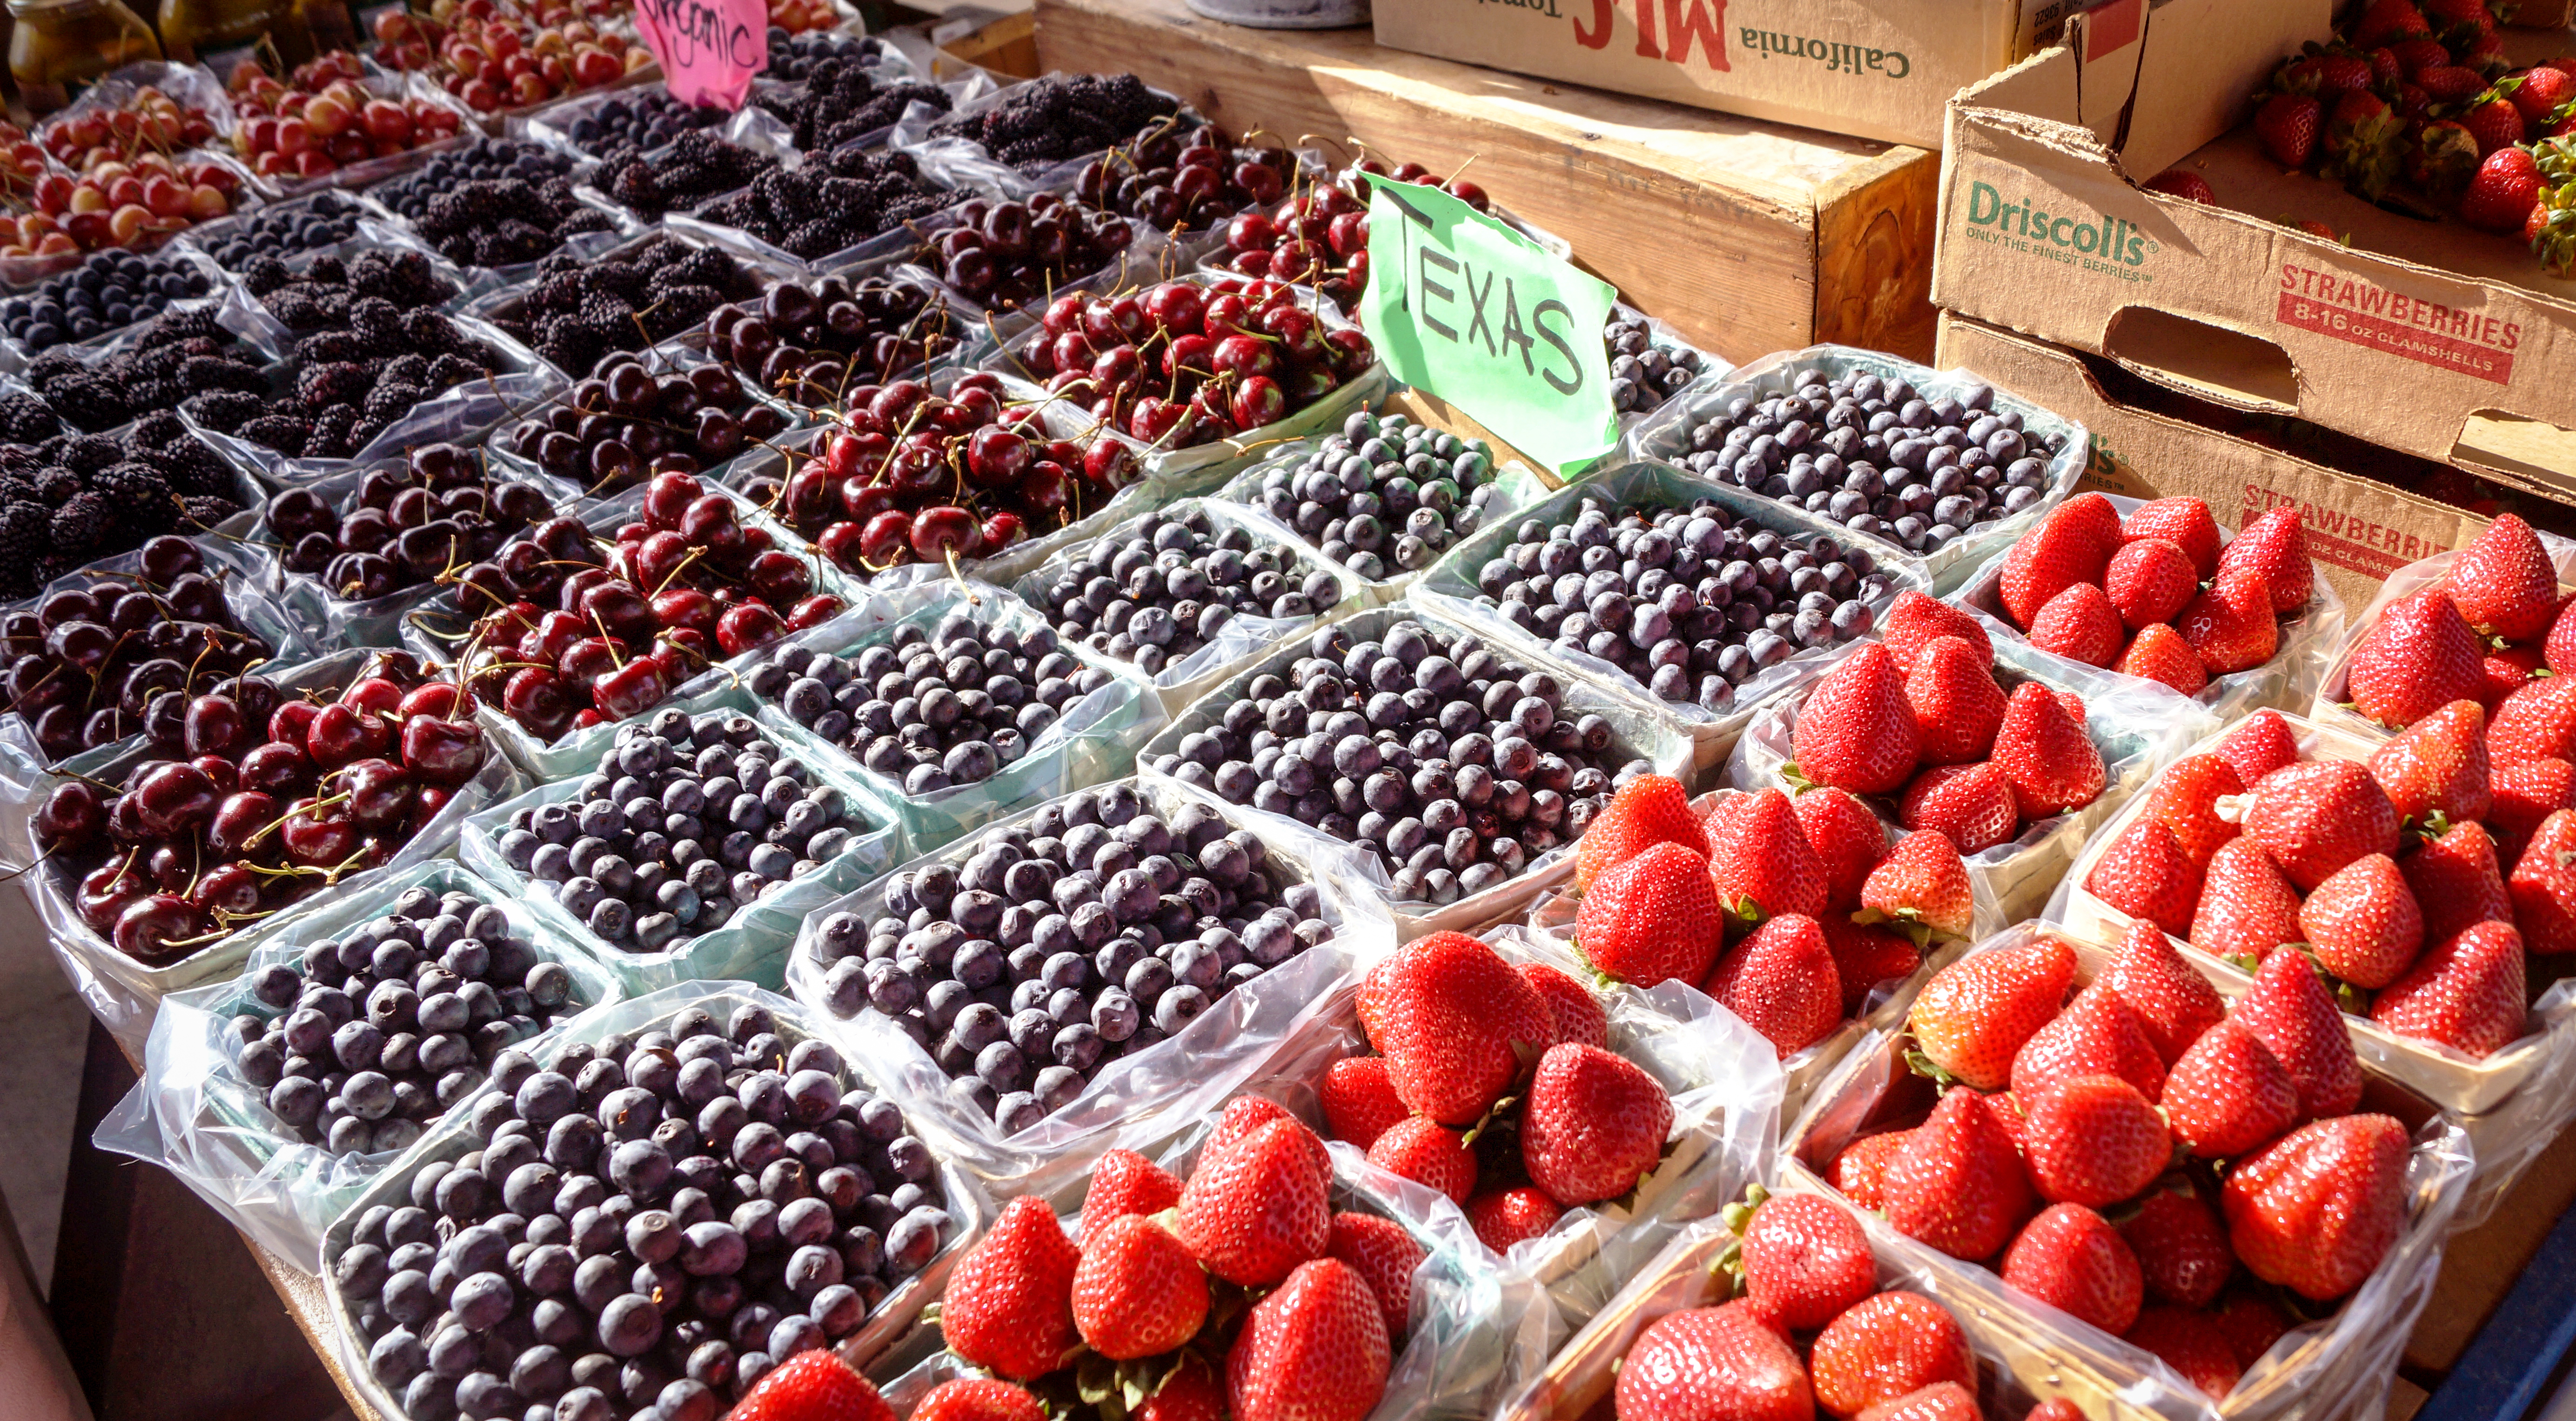 Got fruit? The farmers market does and much more!